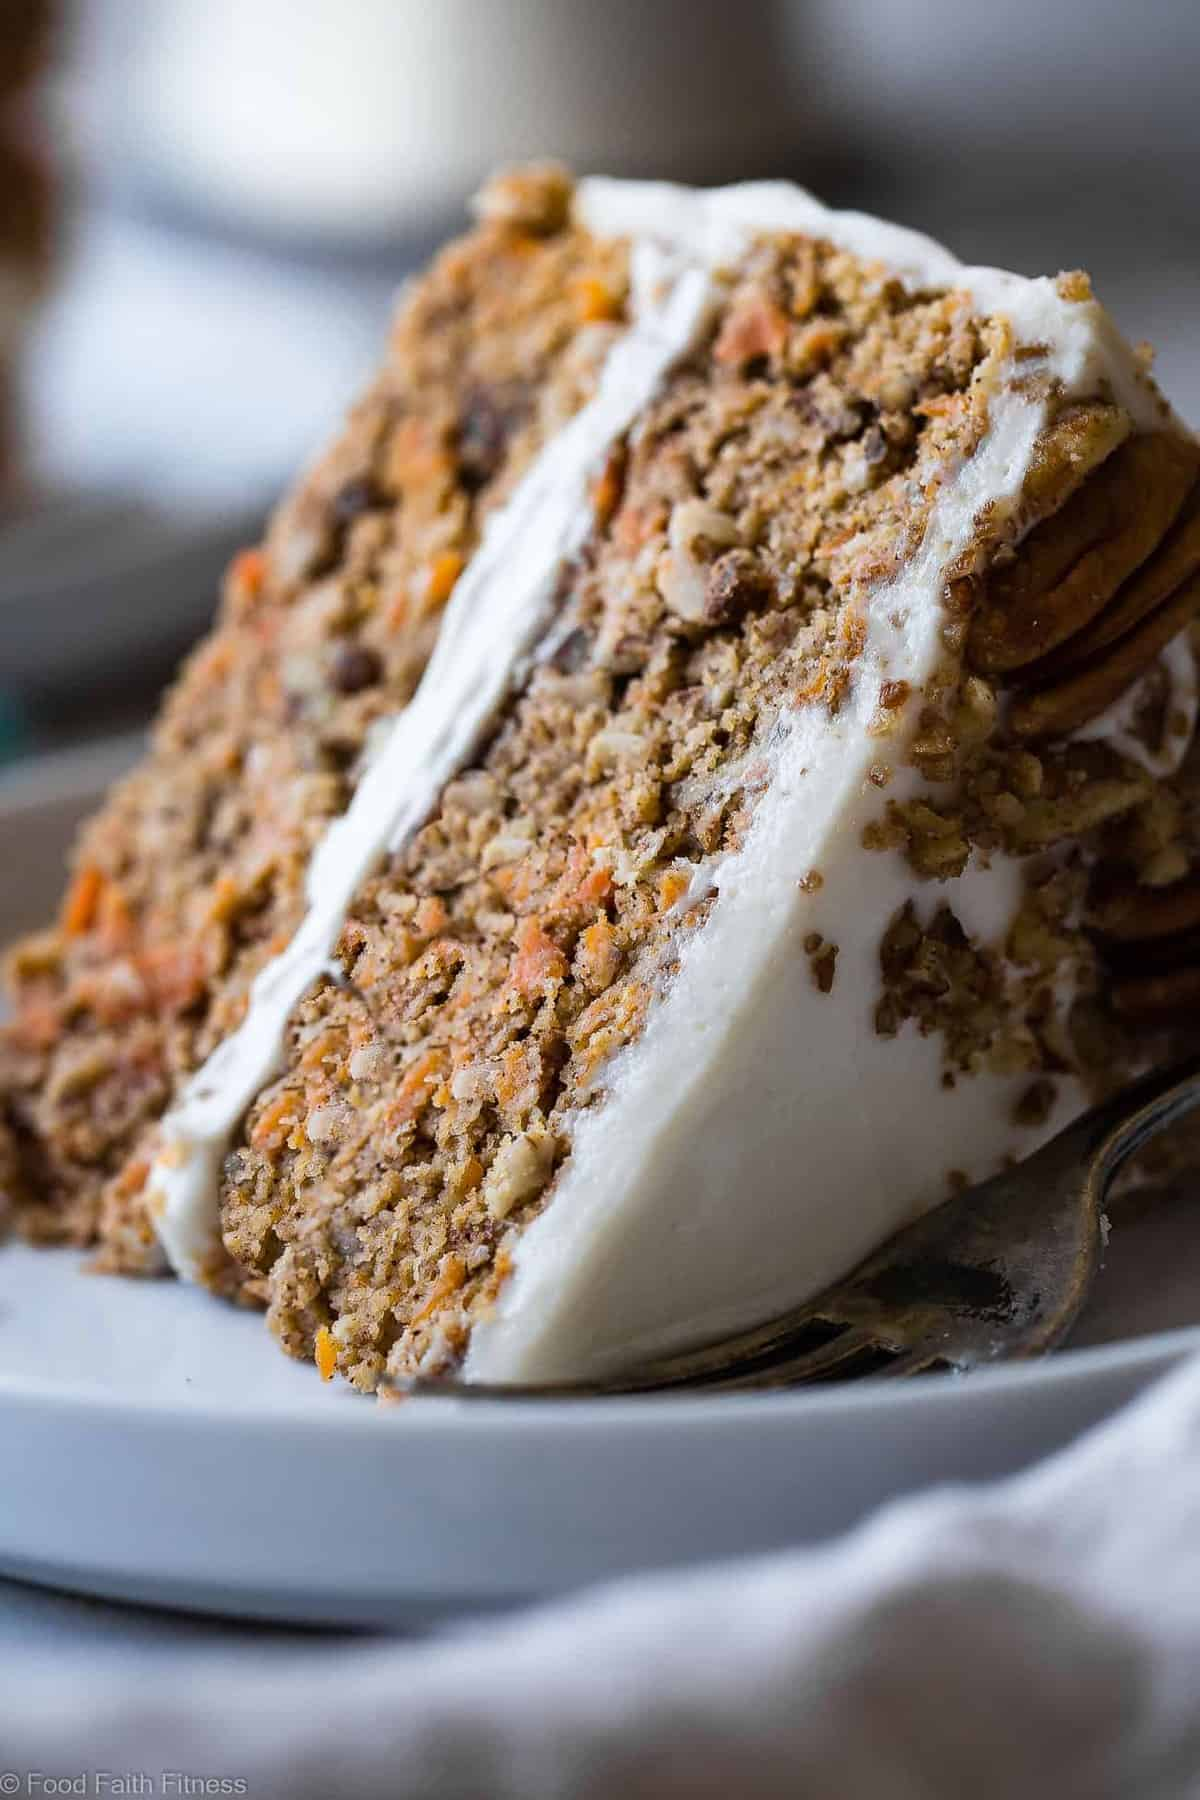 Low Carb Sugar Free Carrot Cake - this healthy, sugar free carrot cake is SO moist and tender, you'll never know it's gluten, oil and butter free, made with Greek yogurt, only 170 calories and 5 WW Freestyle points! Perfect for Easter! | #Foodfaithfitness | #Lowcarb #sugarfree #glutenfree #carrotcake #easter